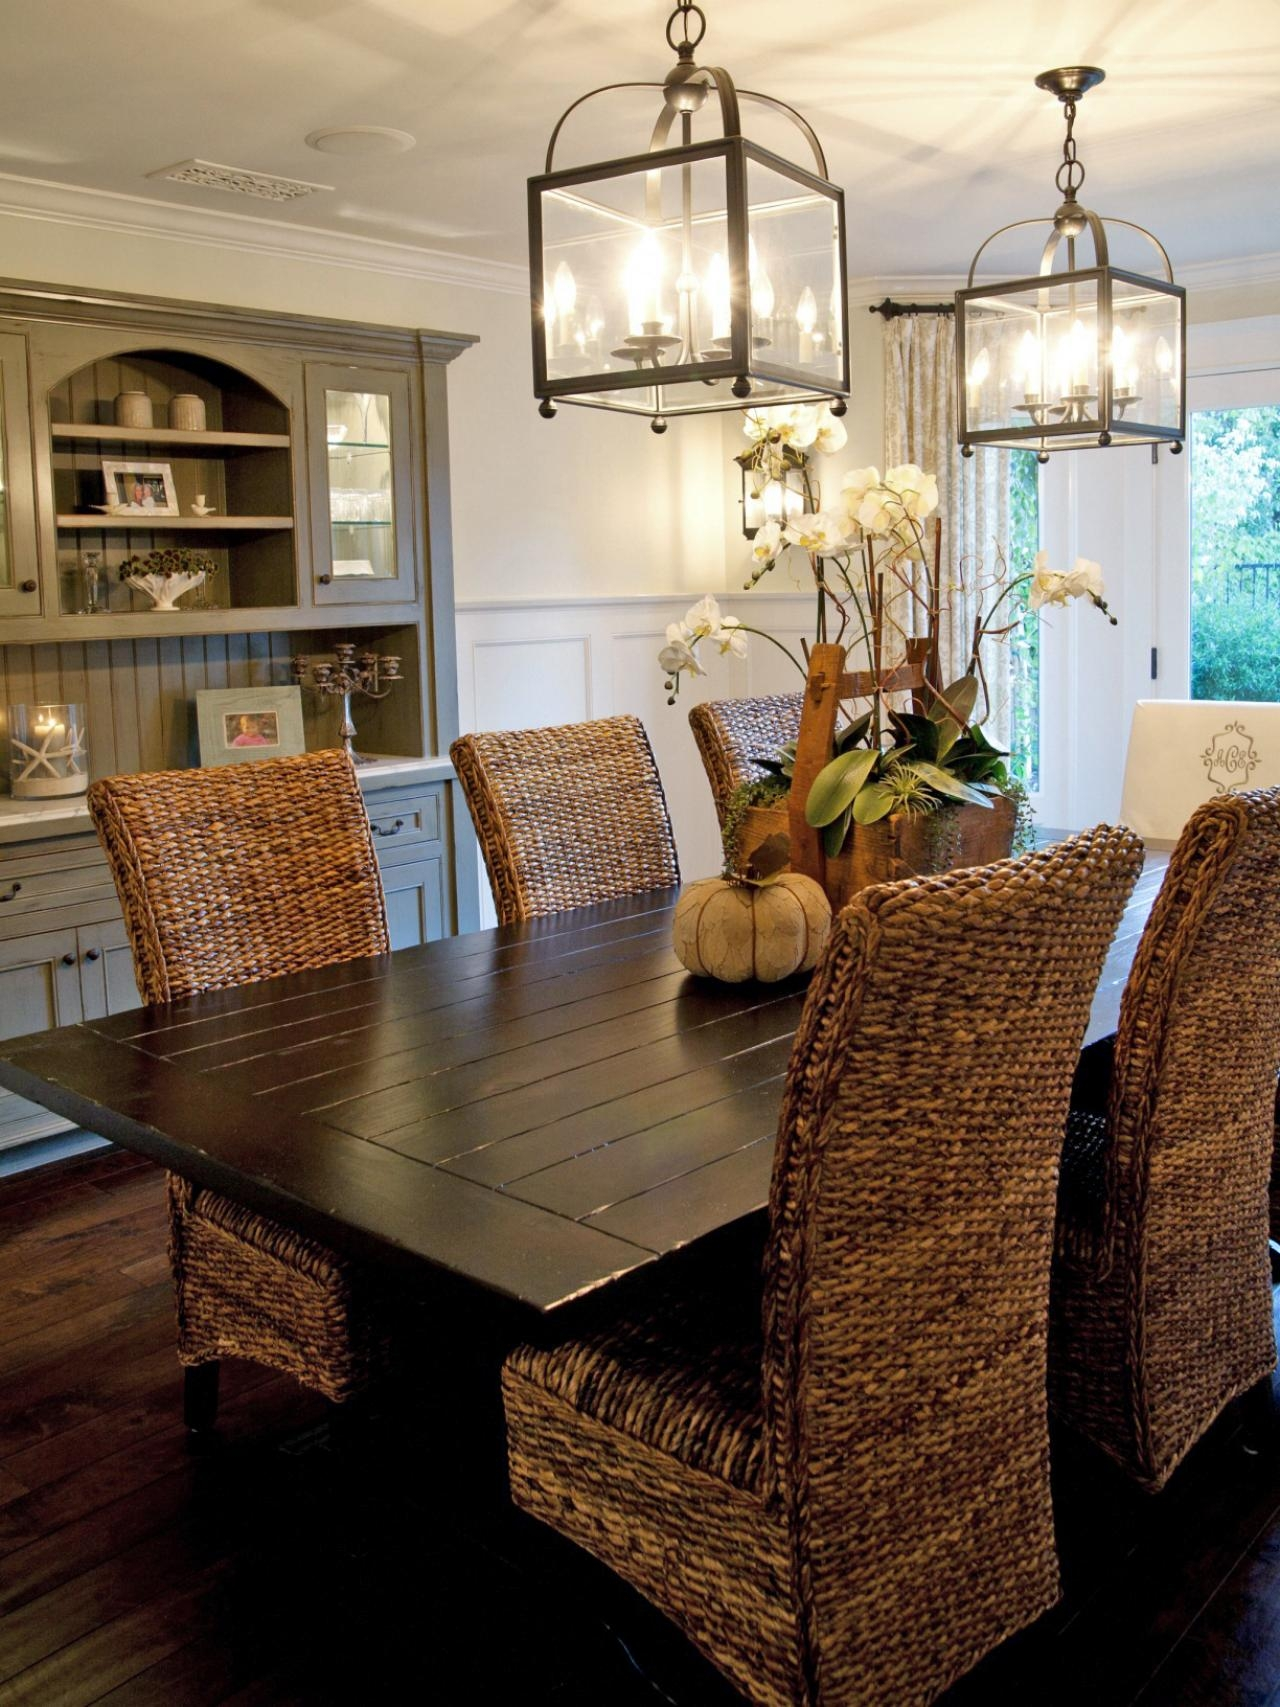 Sleigh Wicker Dining Doom Set Mixed Grey Kitchen Cabinet Elegant Throughout Indoor Lantern Chandelier (Image 15 of 15)